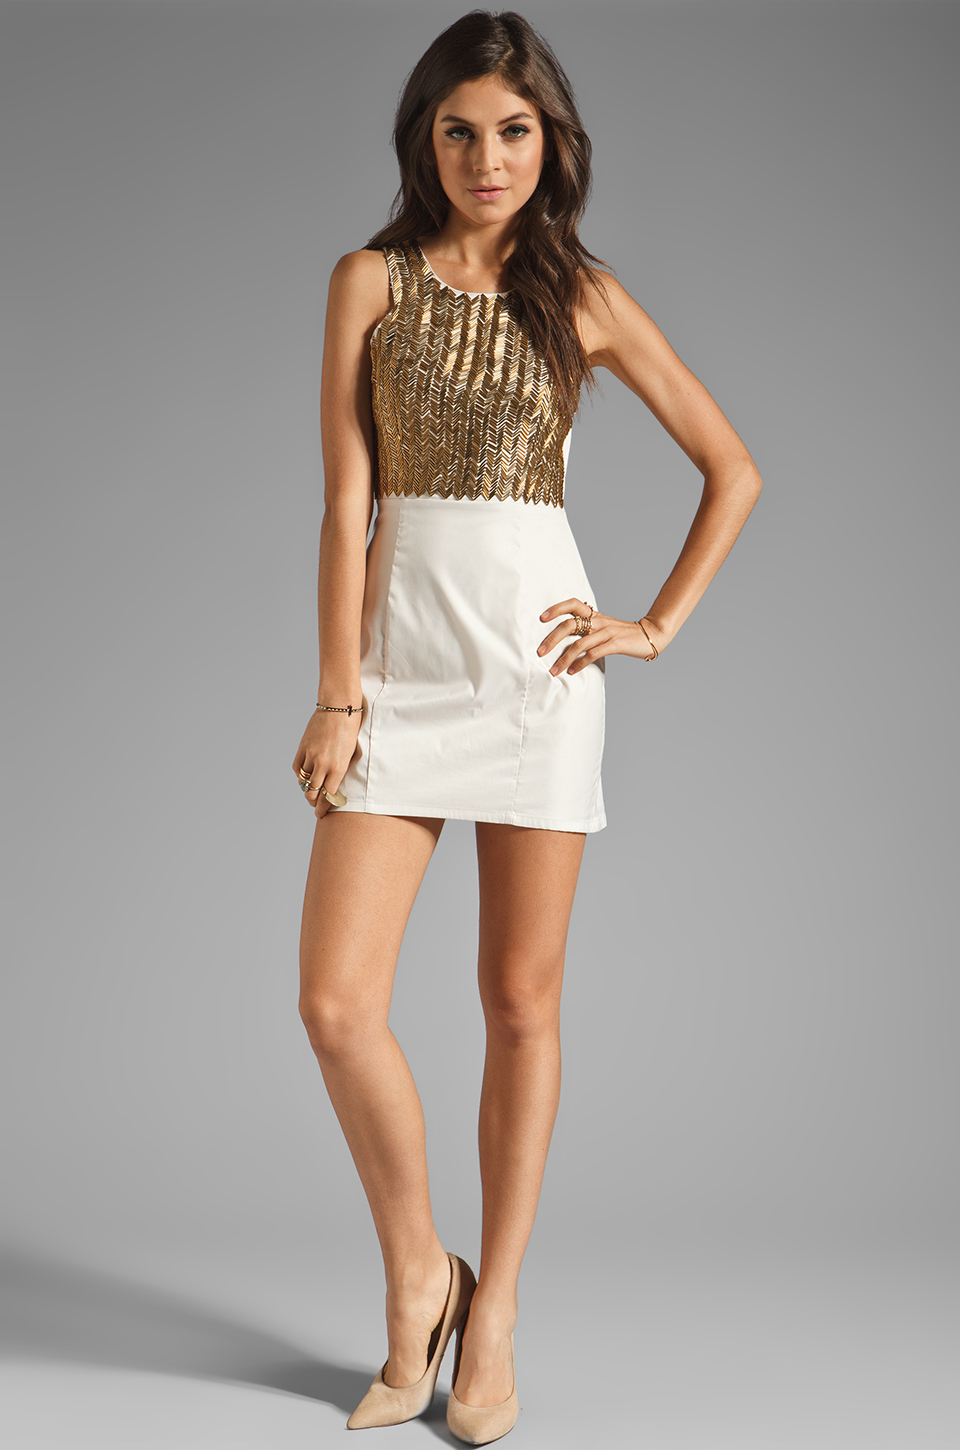 keepsake All-Nighter Dress in Cream & Gold Beads | REVOLVE